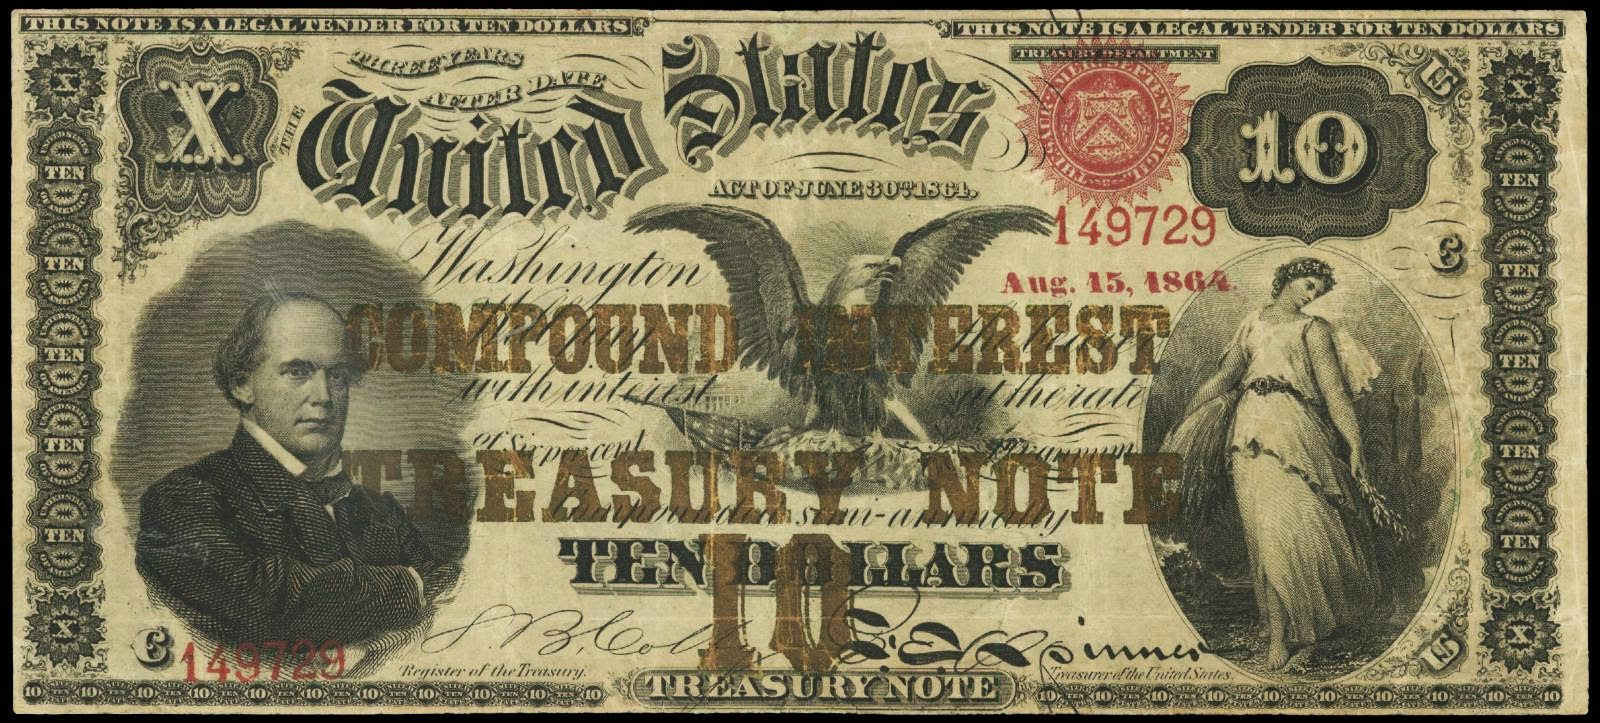 United States 10 Dollar Compound Interest Treasury Note 1864